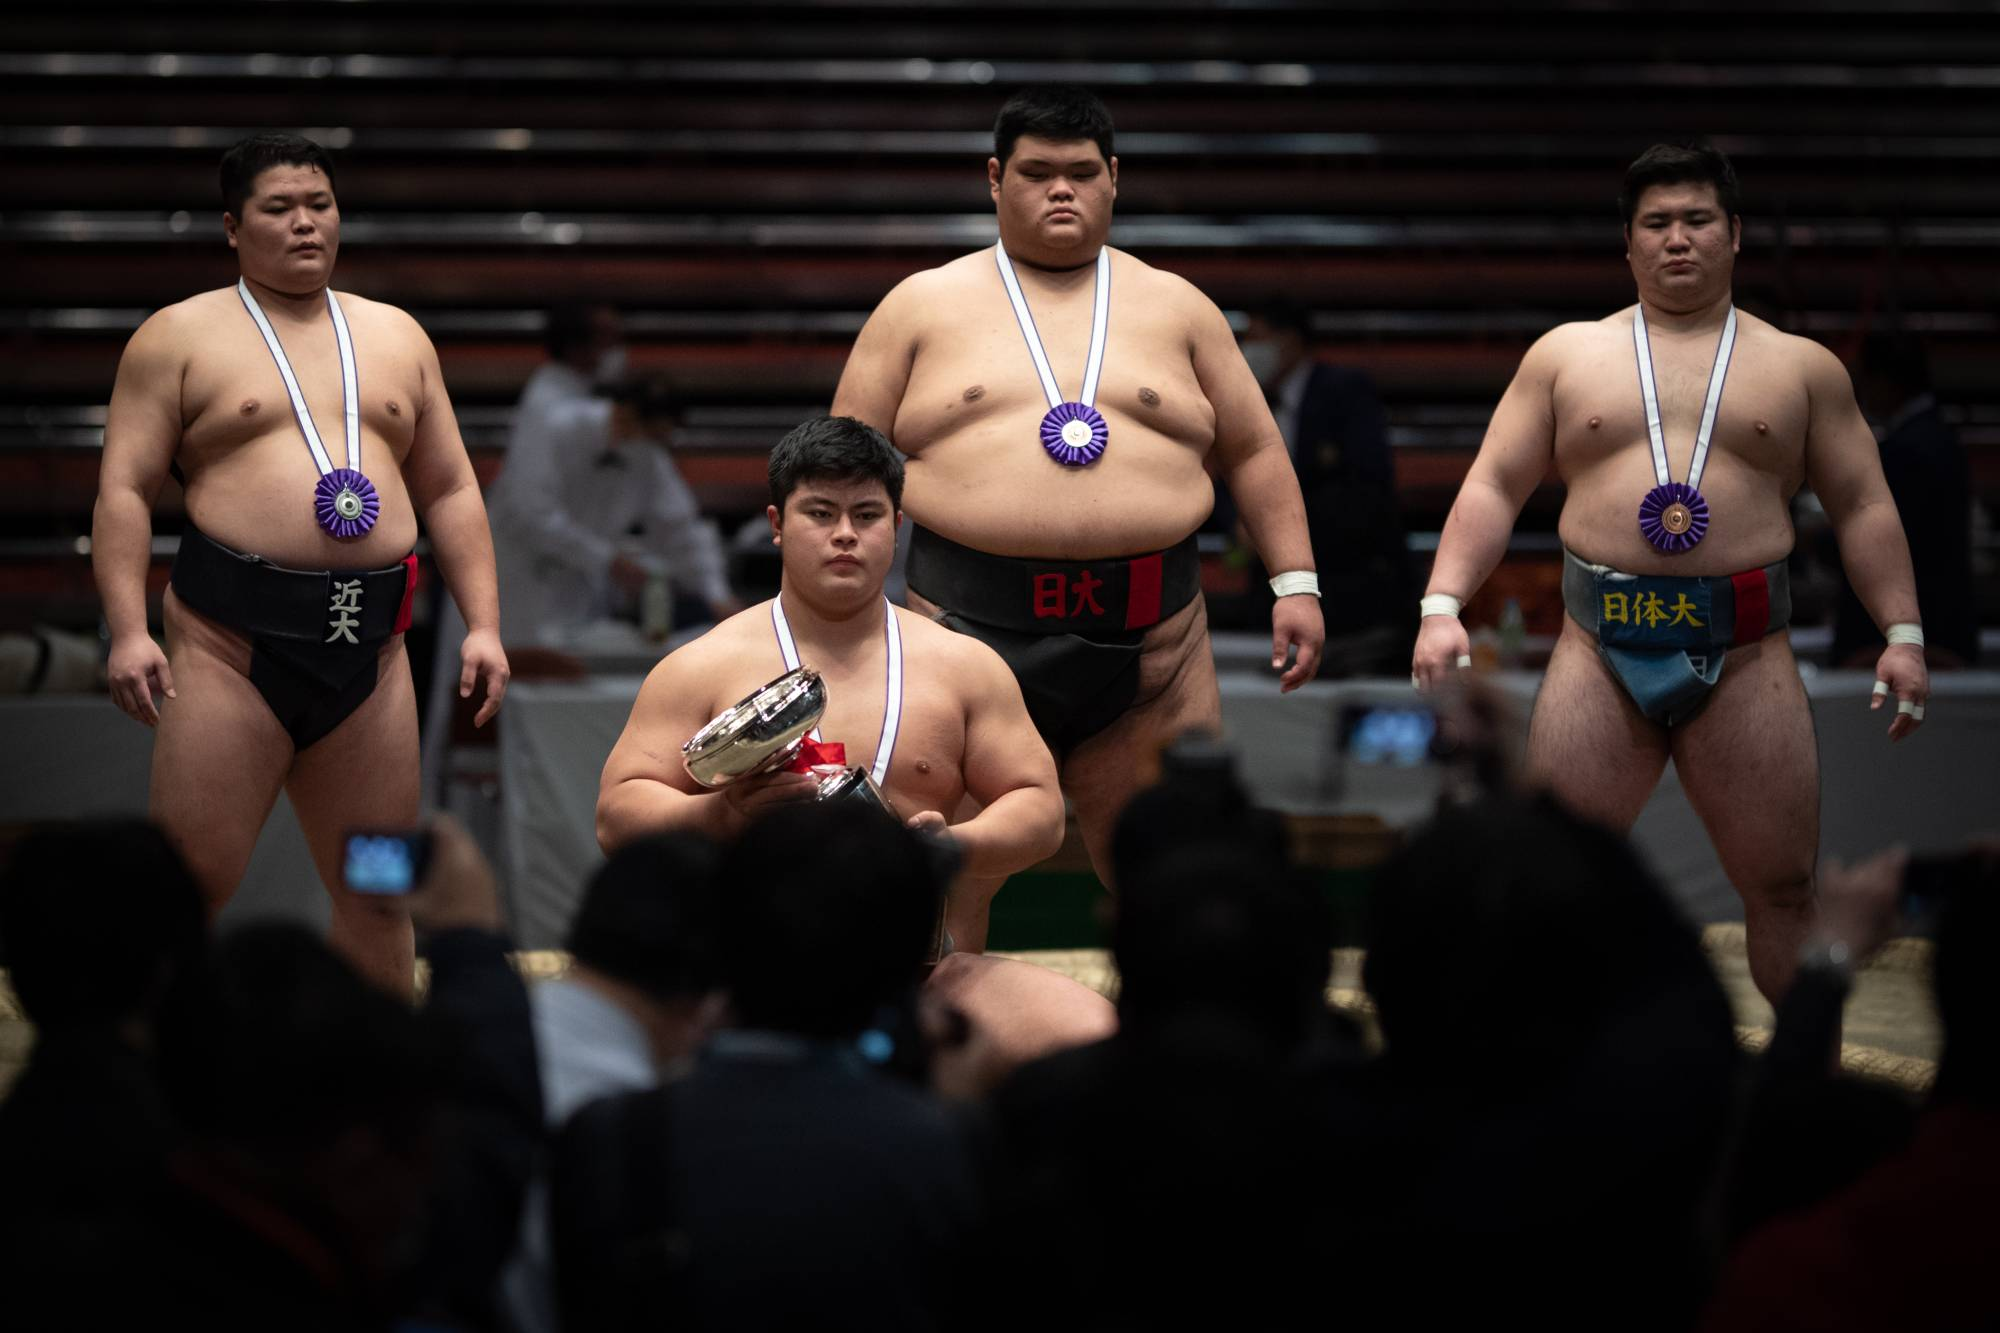 All Japan winner Hidetora Haneda (crouching) poses for photos with the remainder of the top four. | JOHN GUNNING